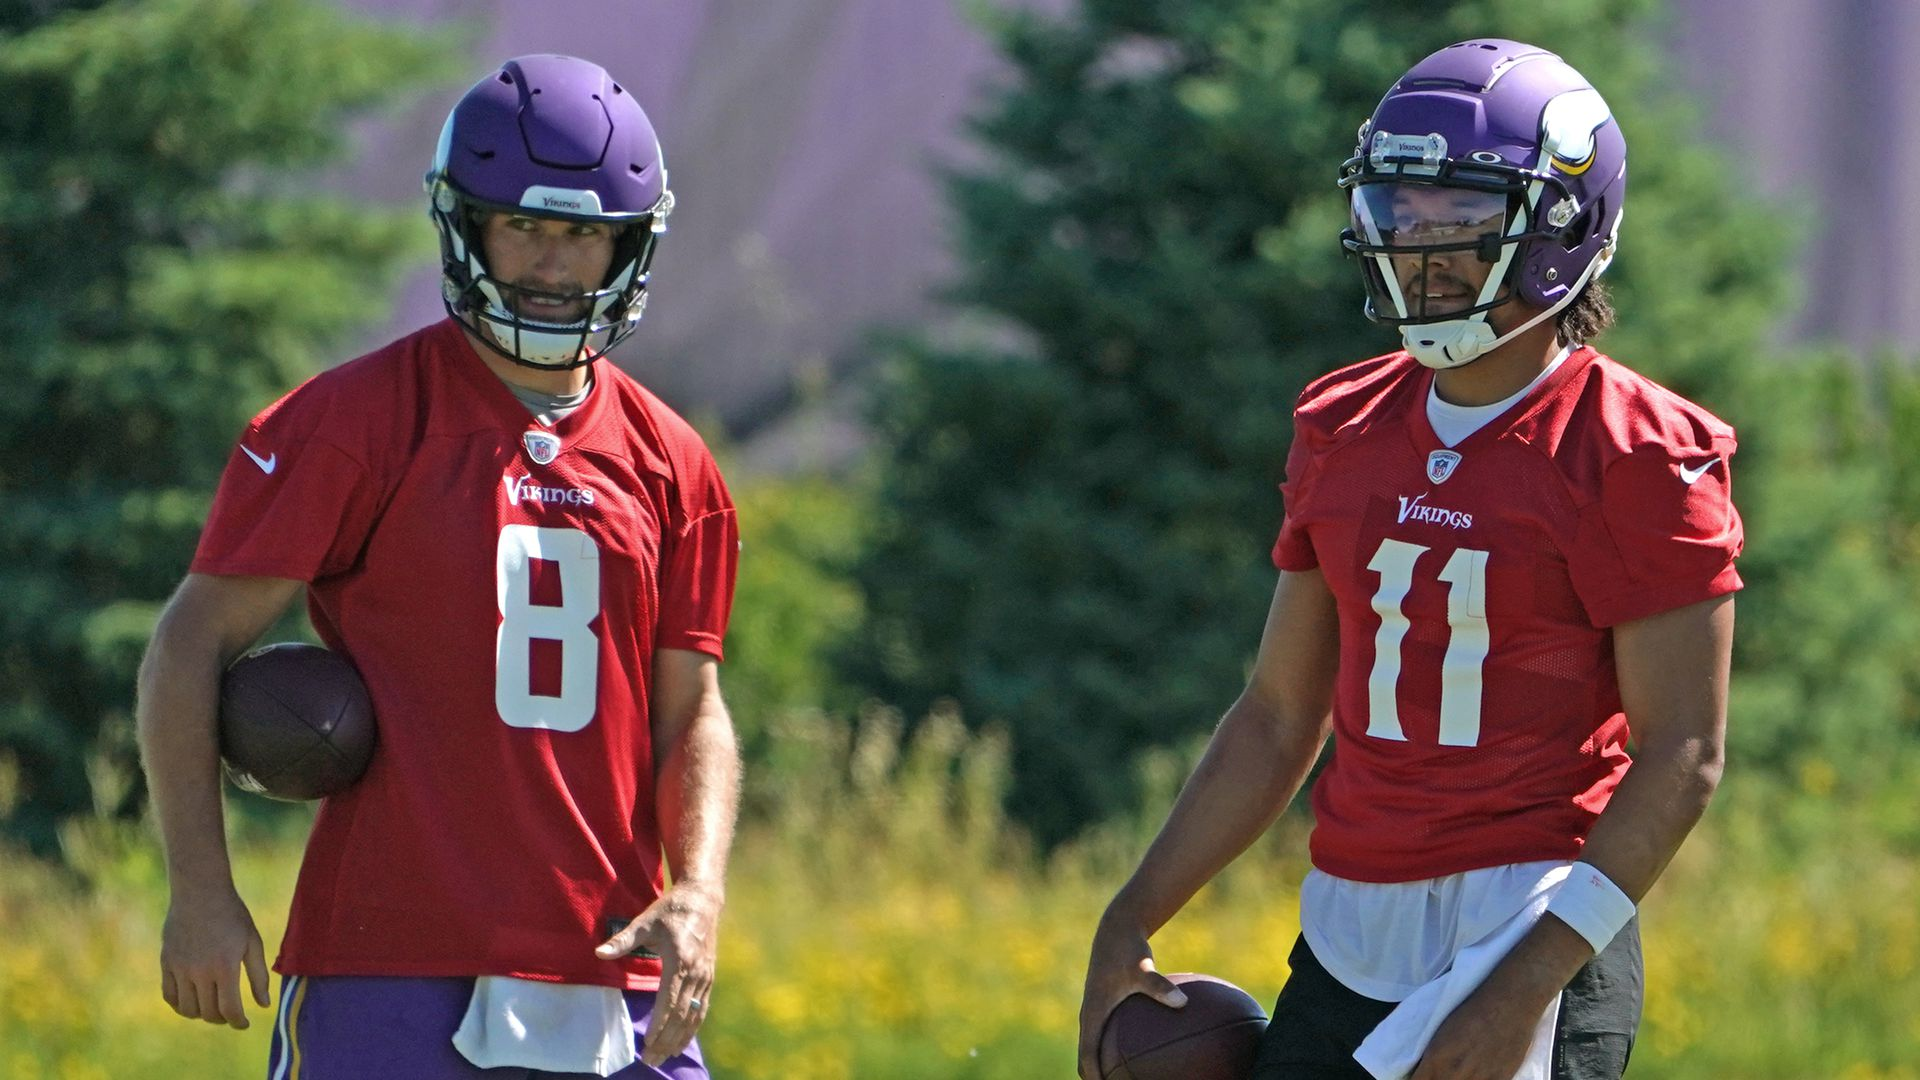 A photo of Kirk Cousins and Kellen Mond at training practice for the Minnesota Vikings.